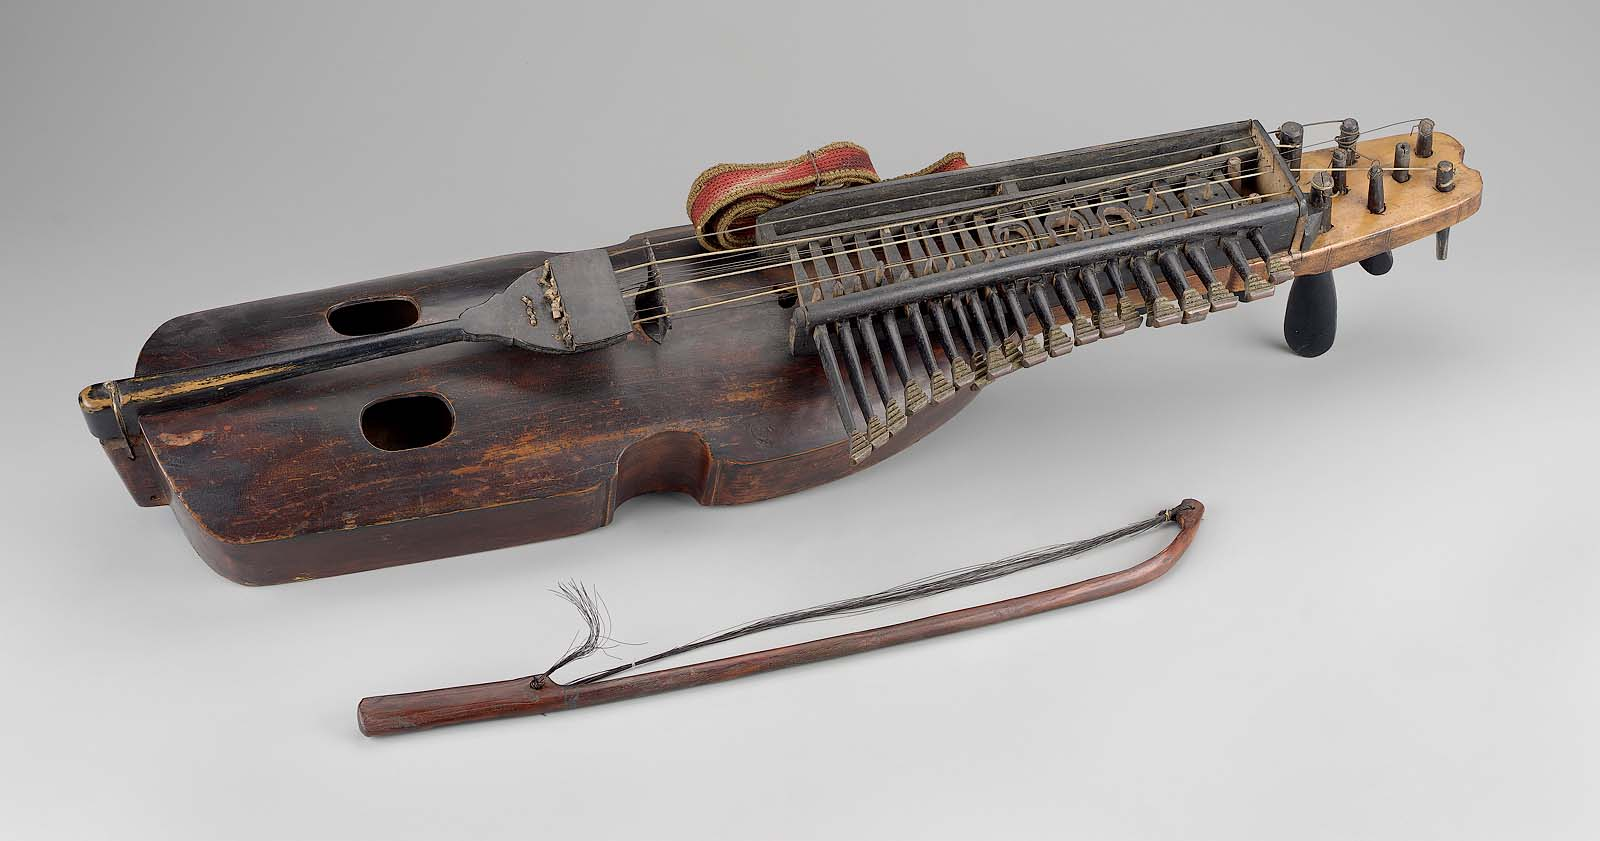 Keyed fiddle (nyckelharpa) and bow